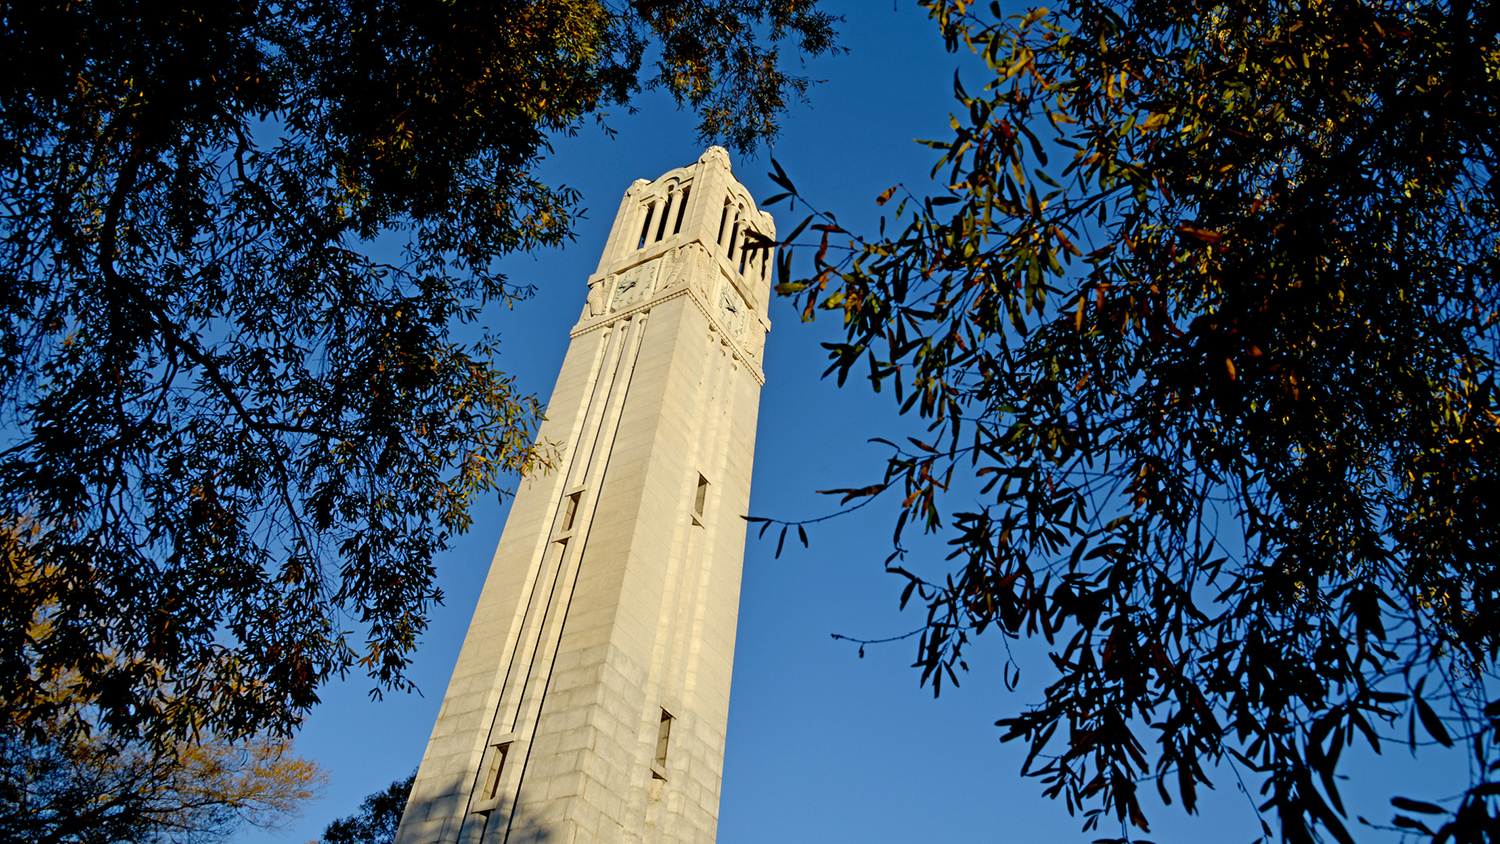 belltower and trees